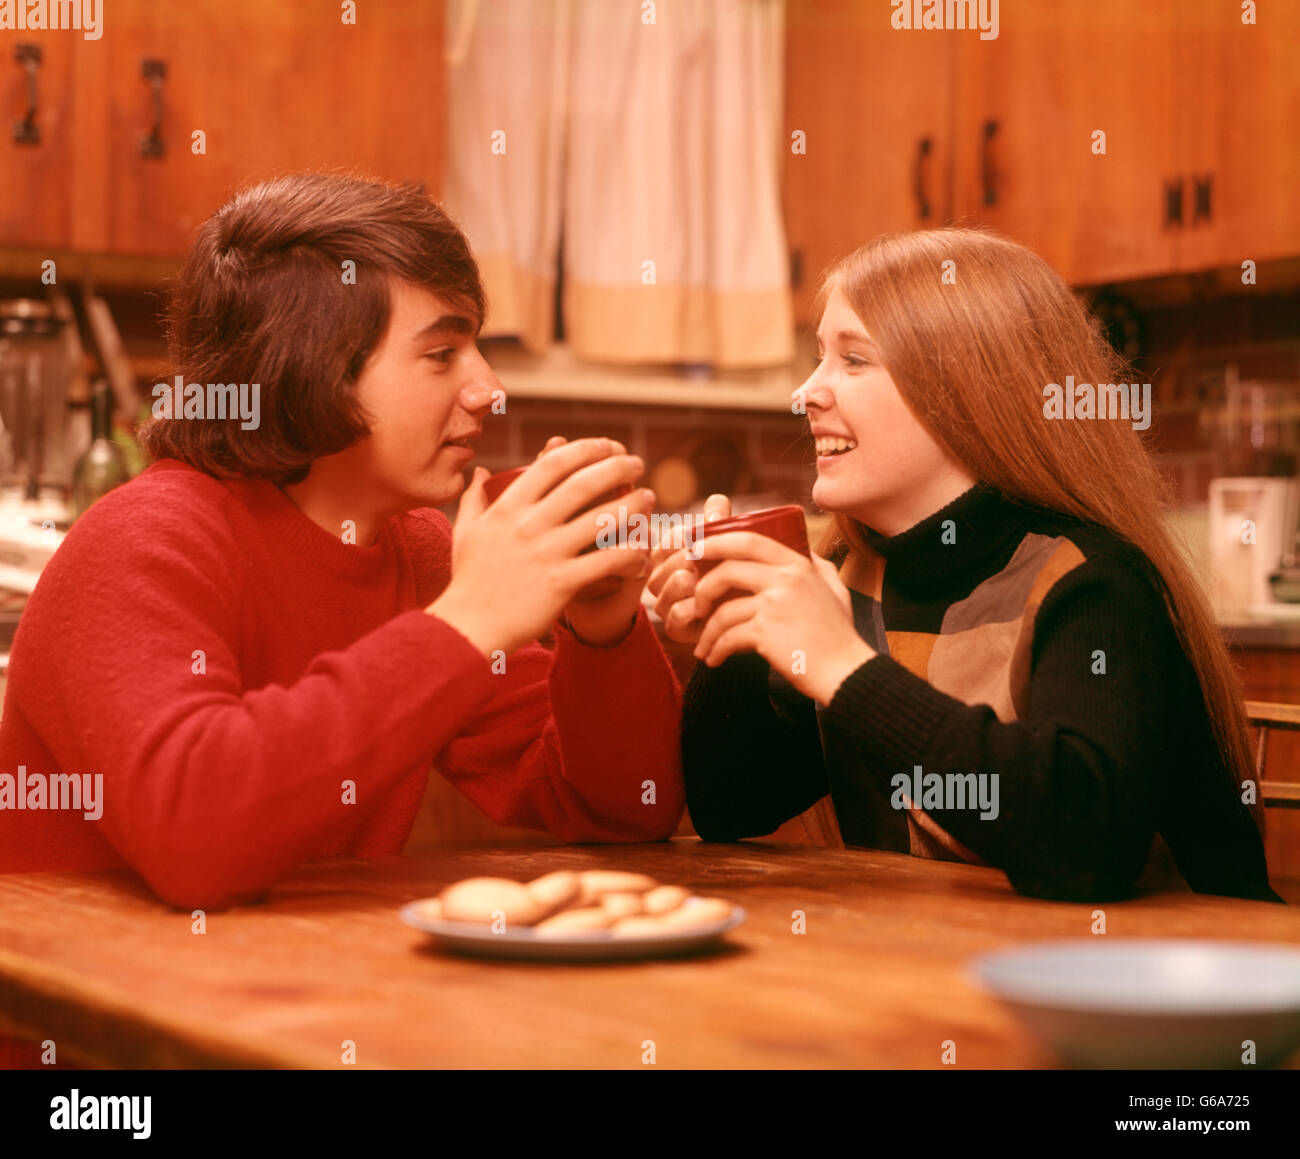 What was dating like in the 70s